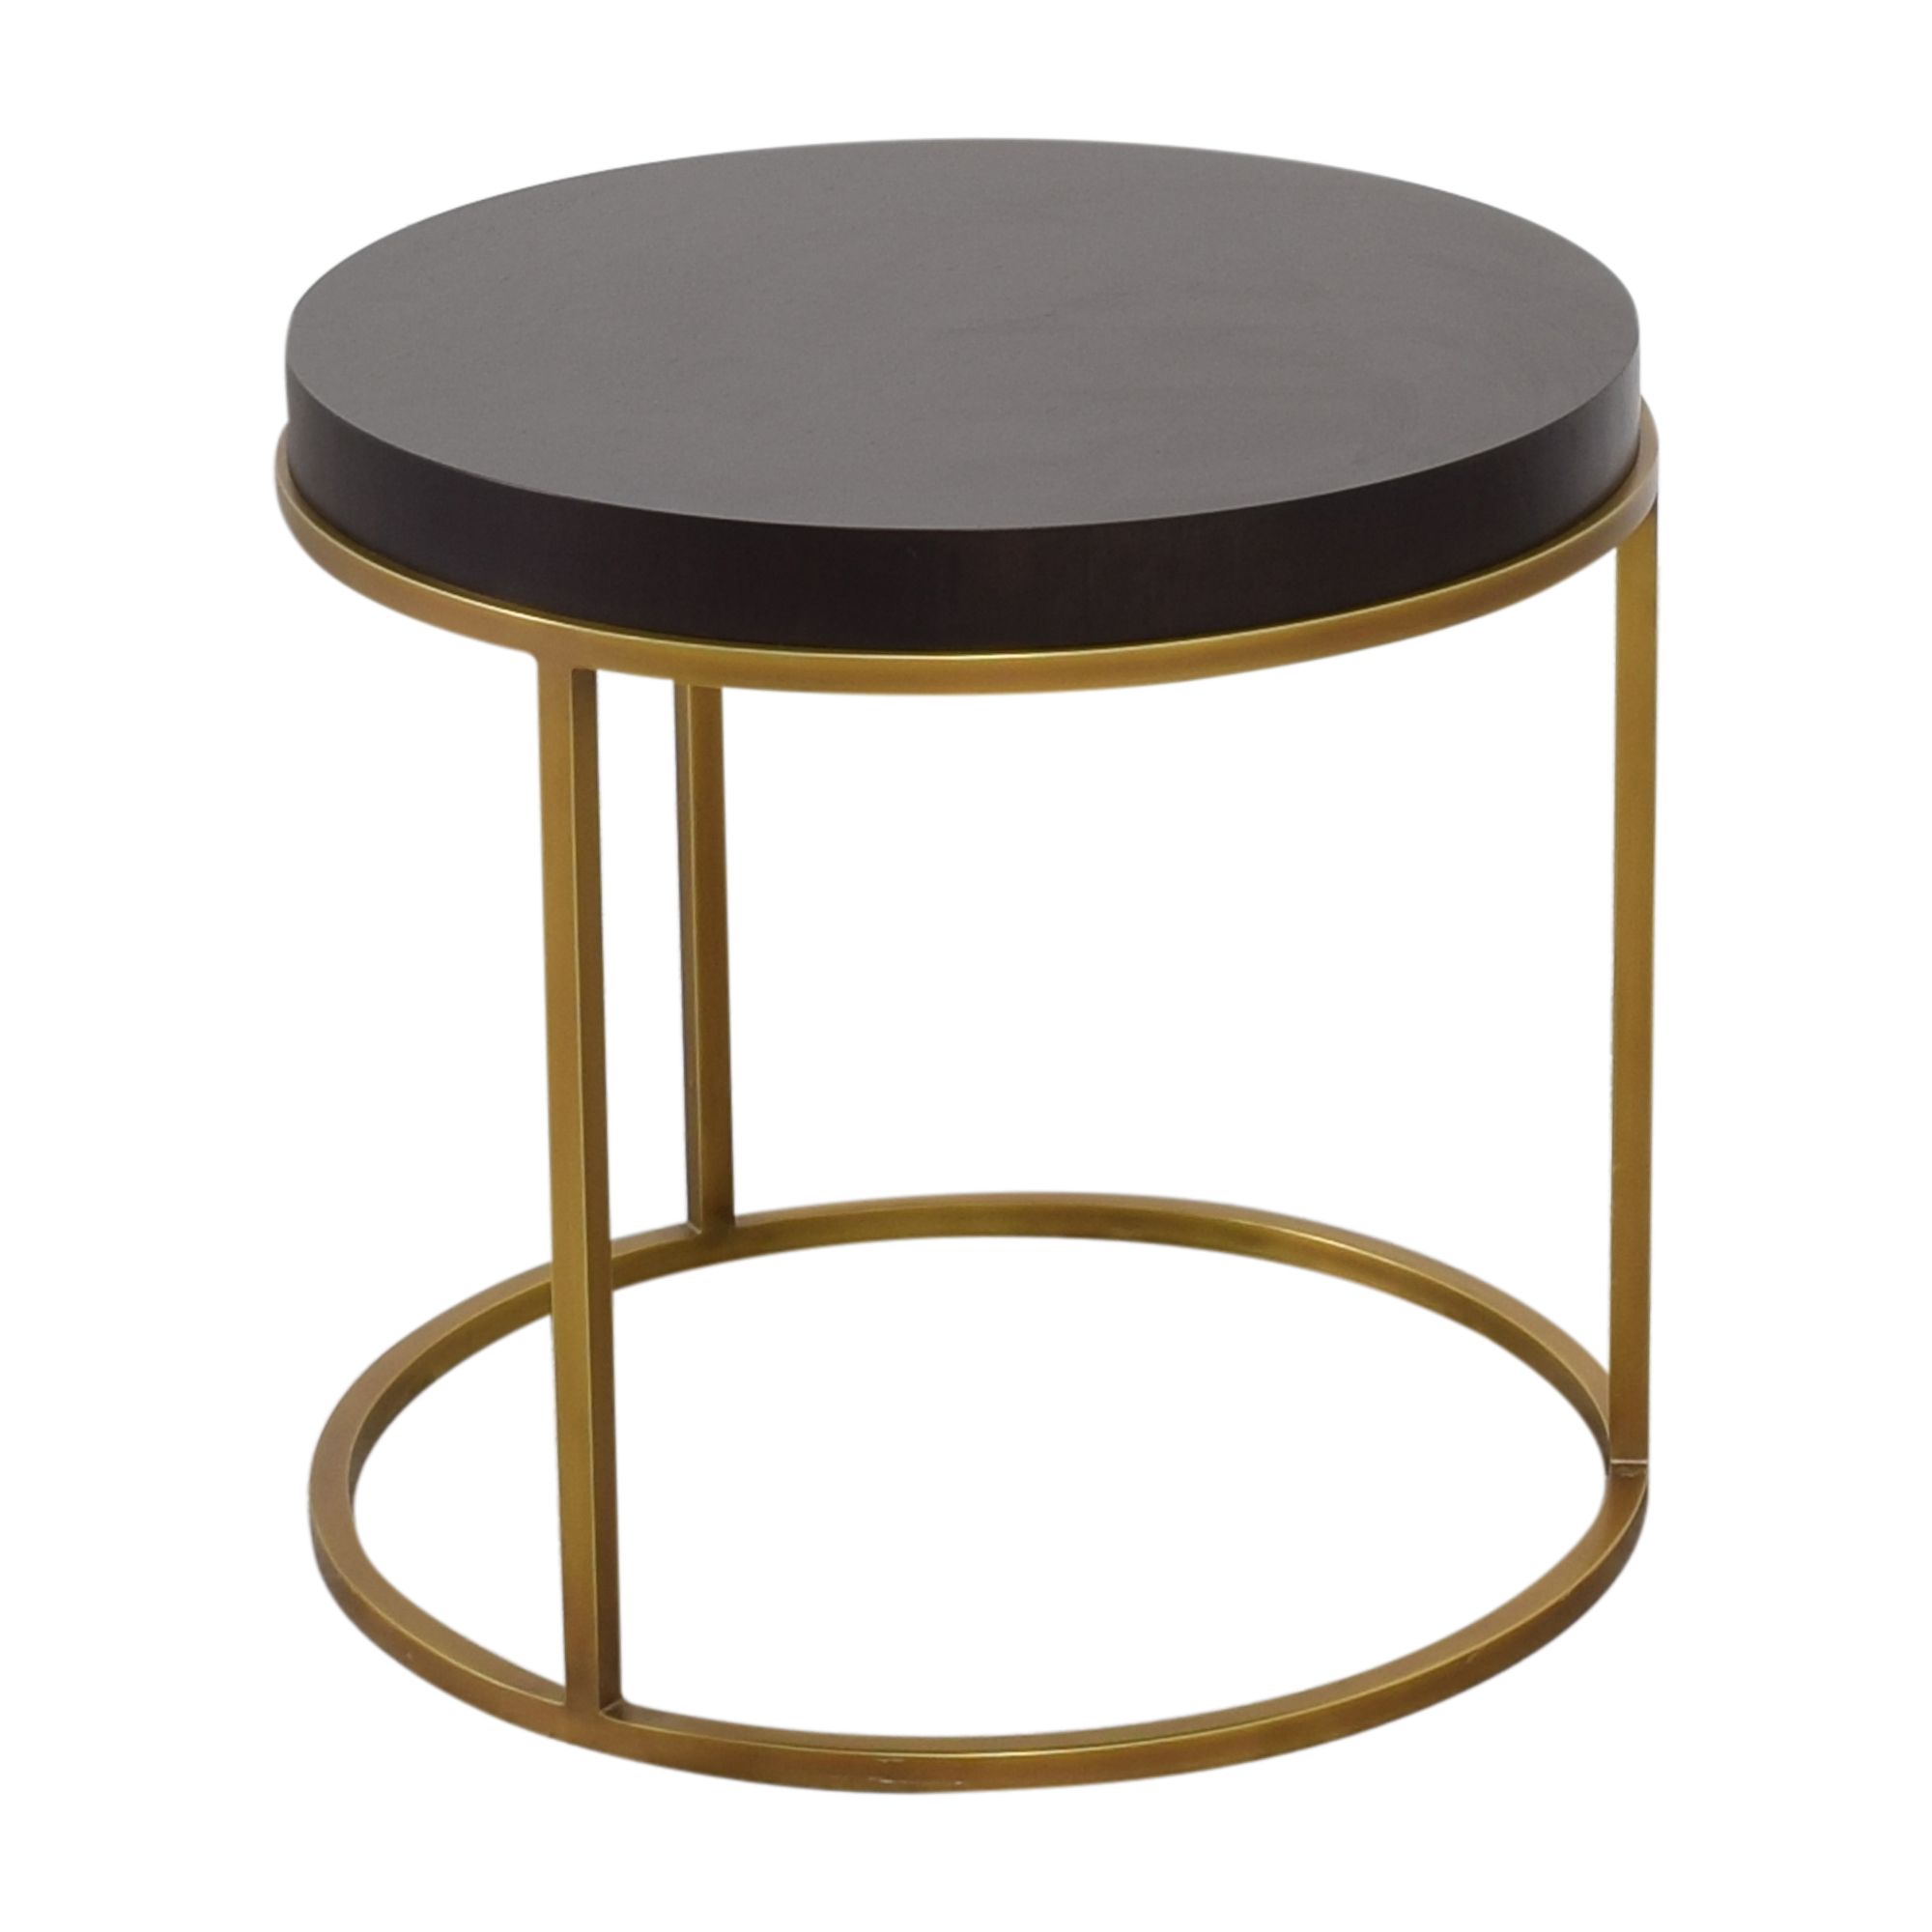 42 Off Restoration Hardware Restoration Hardware Nicholas Round Side Table Tables [ 2000 x 2000 Pixel ]